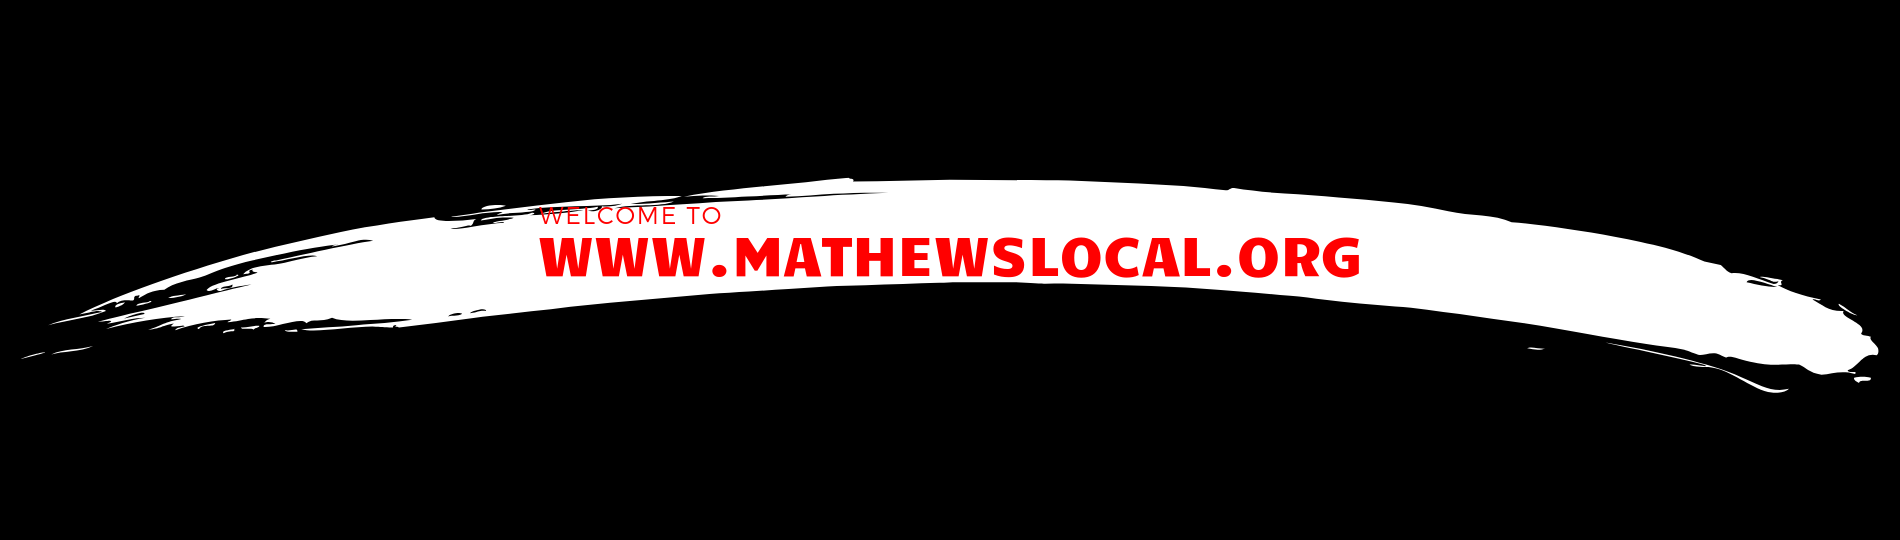 Mathewslocal.org